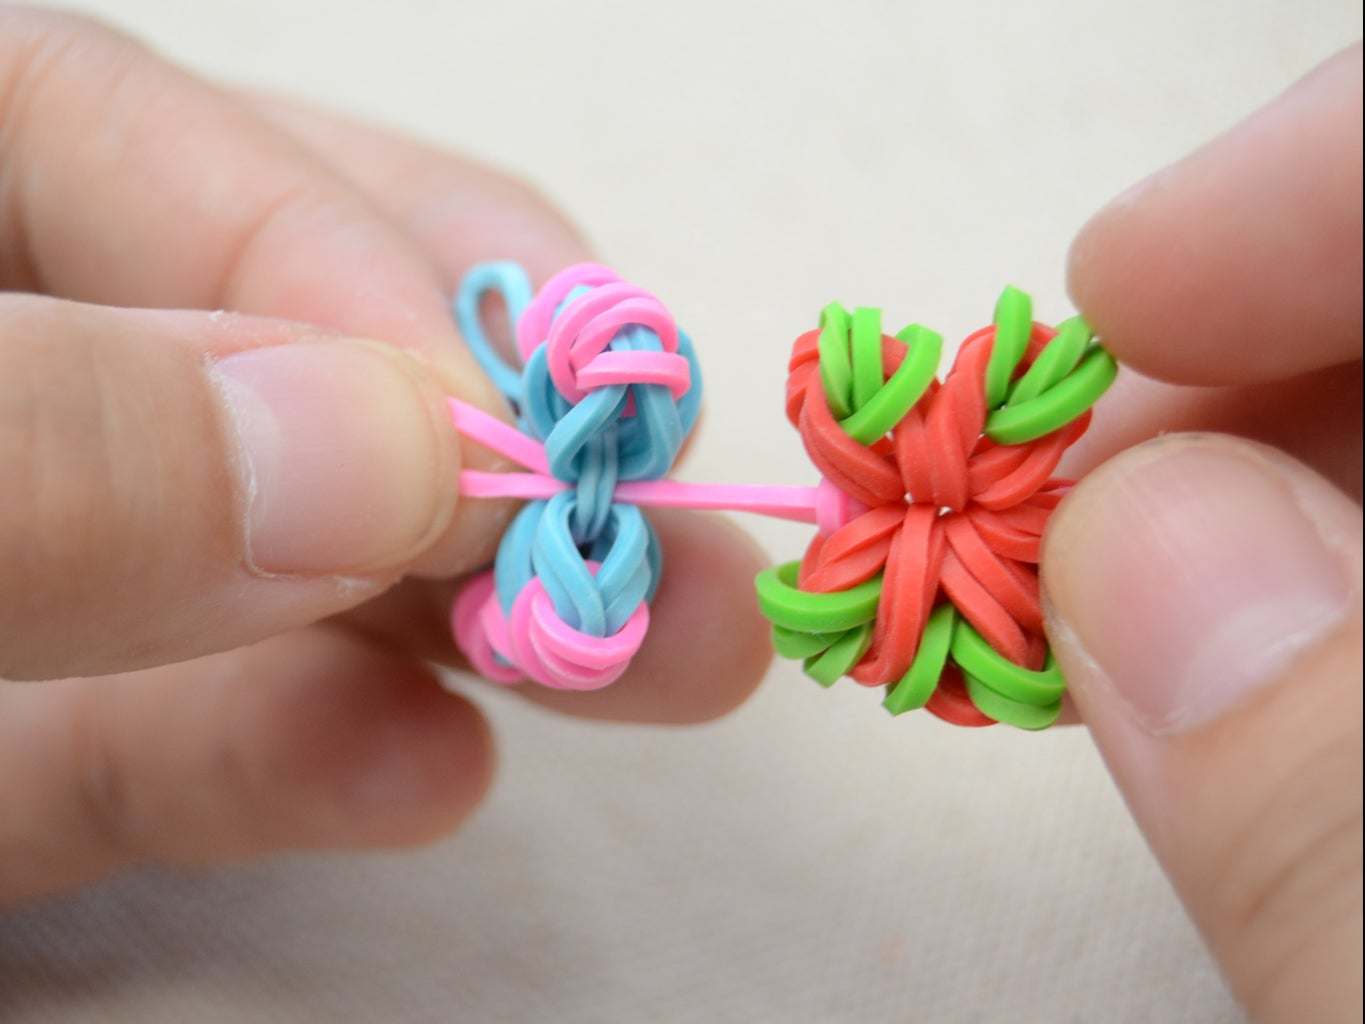 Connect the Second Flower With  the Other End of the Rubber Band;